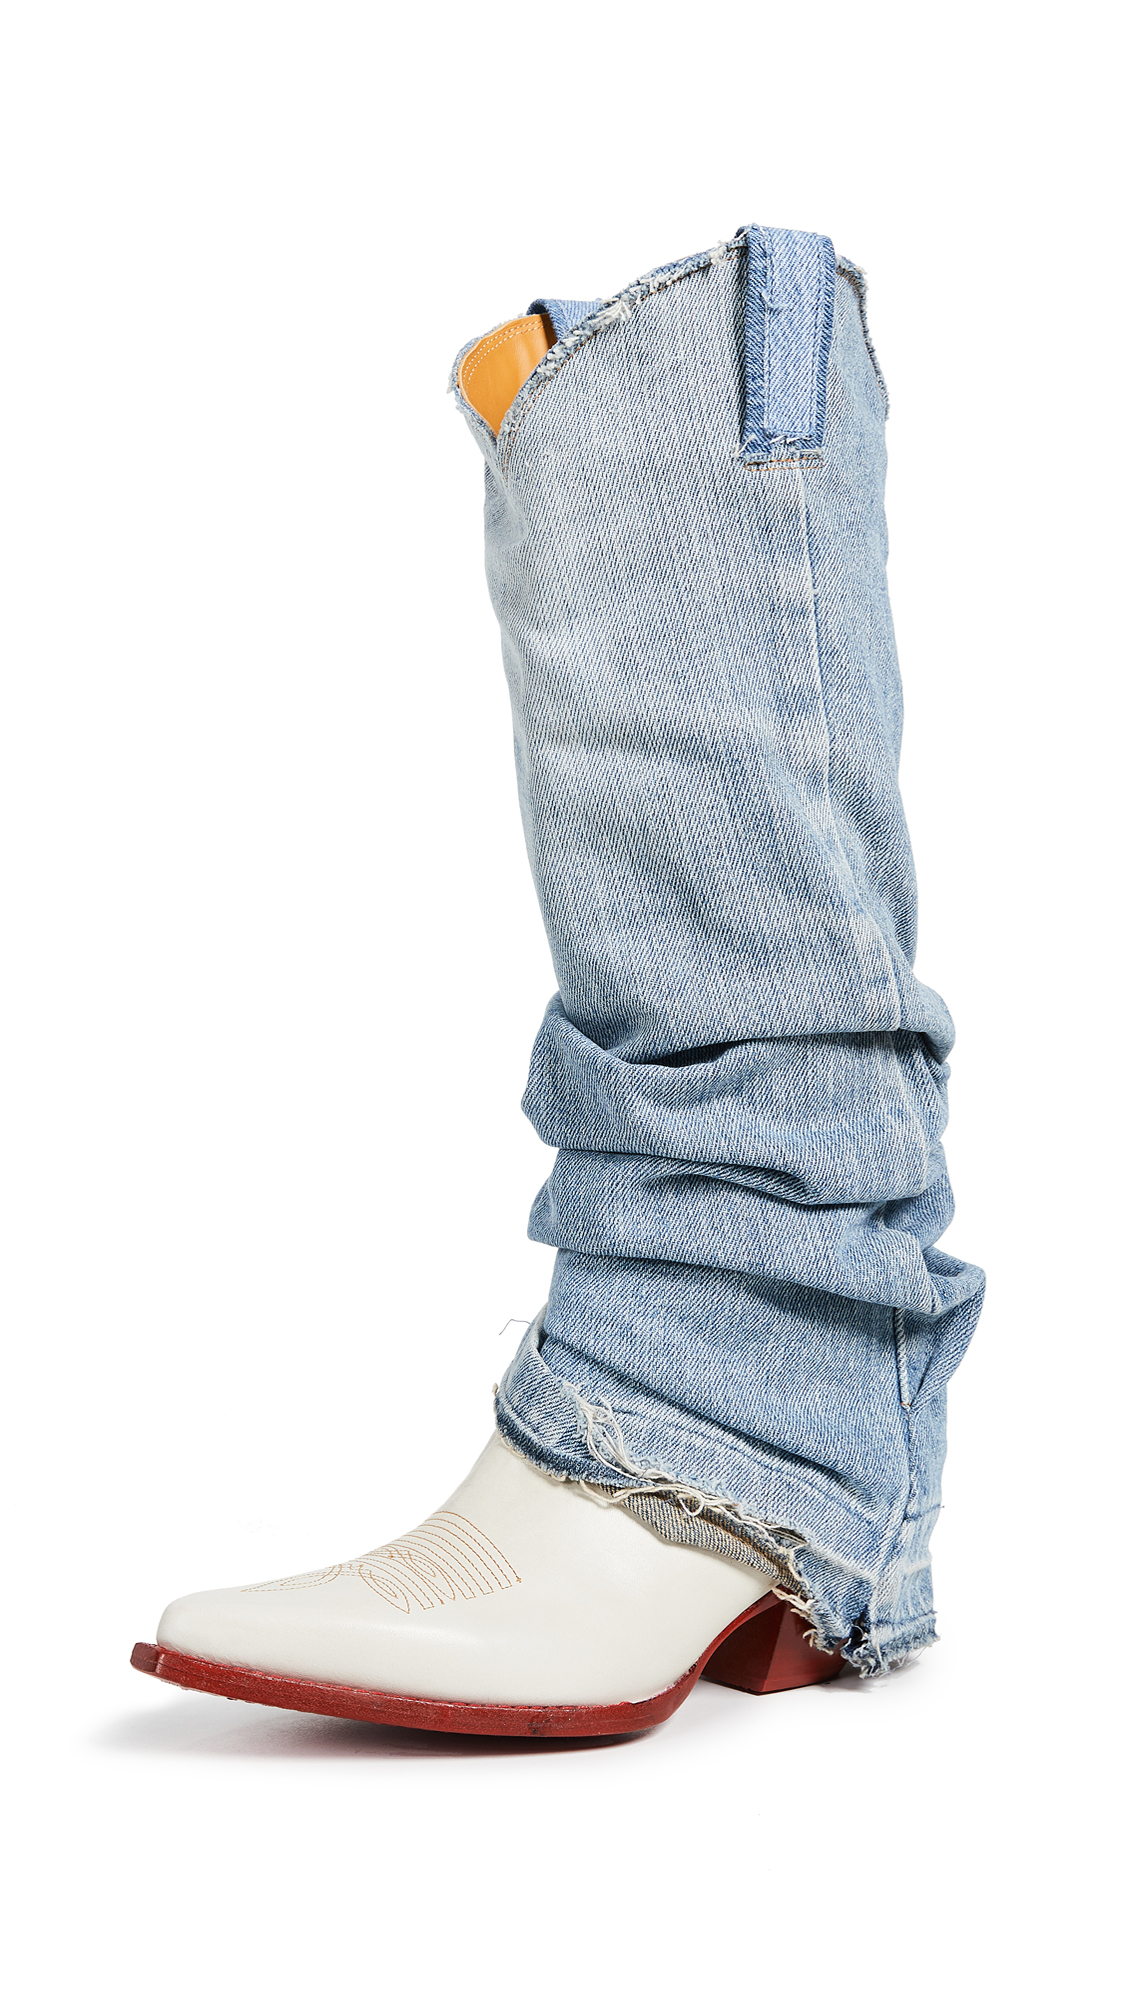 R13 Cowboy Boots with Denim Sleeve - Blue/White